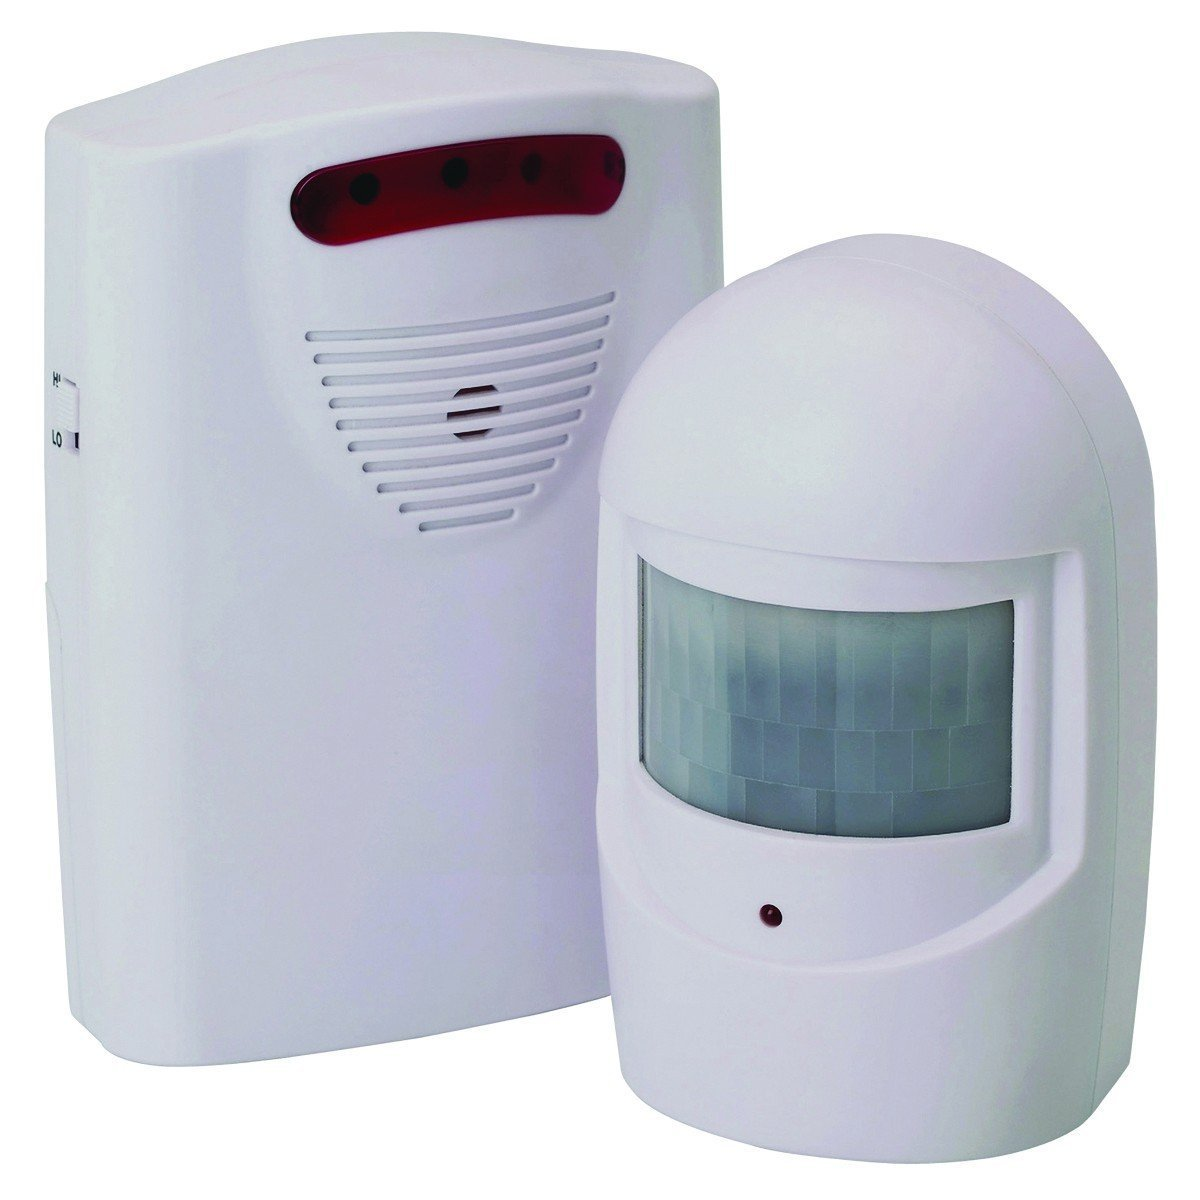 Bunker Hill Wireless Security Driveway Alert System by Bunker Hill Security